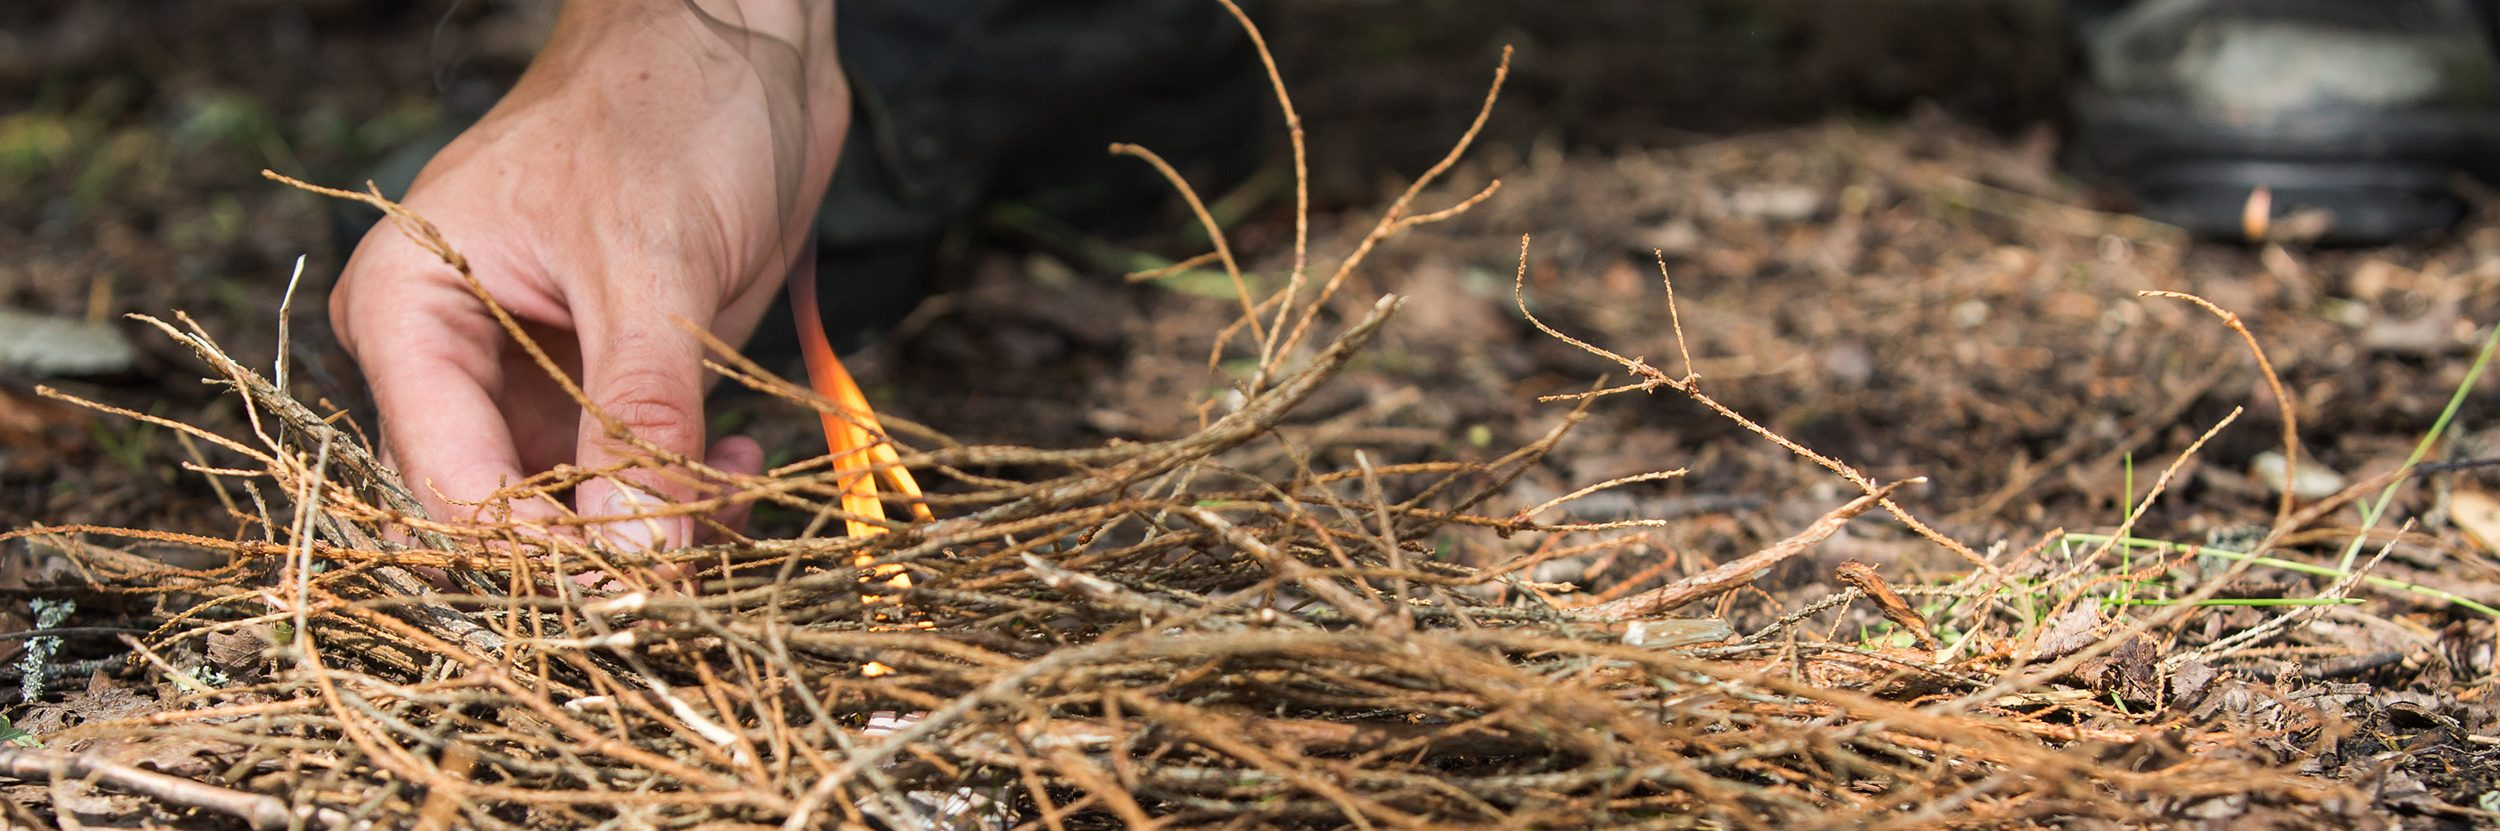 Cooking Fire Safety: Using StealthFyre In The Back Country